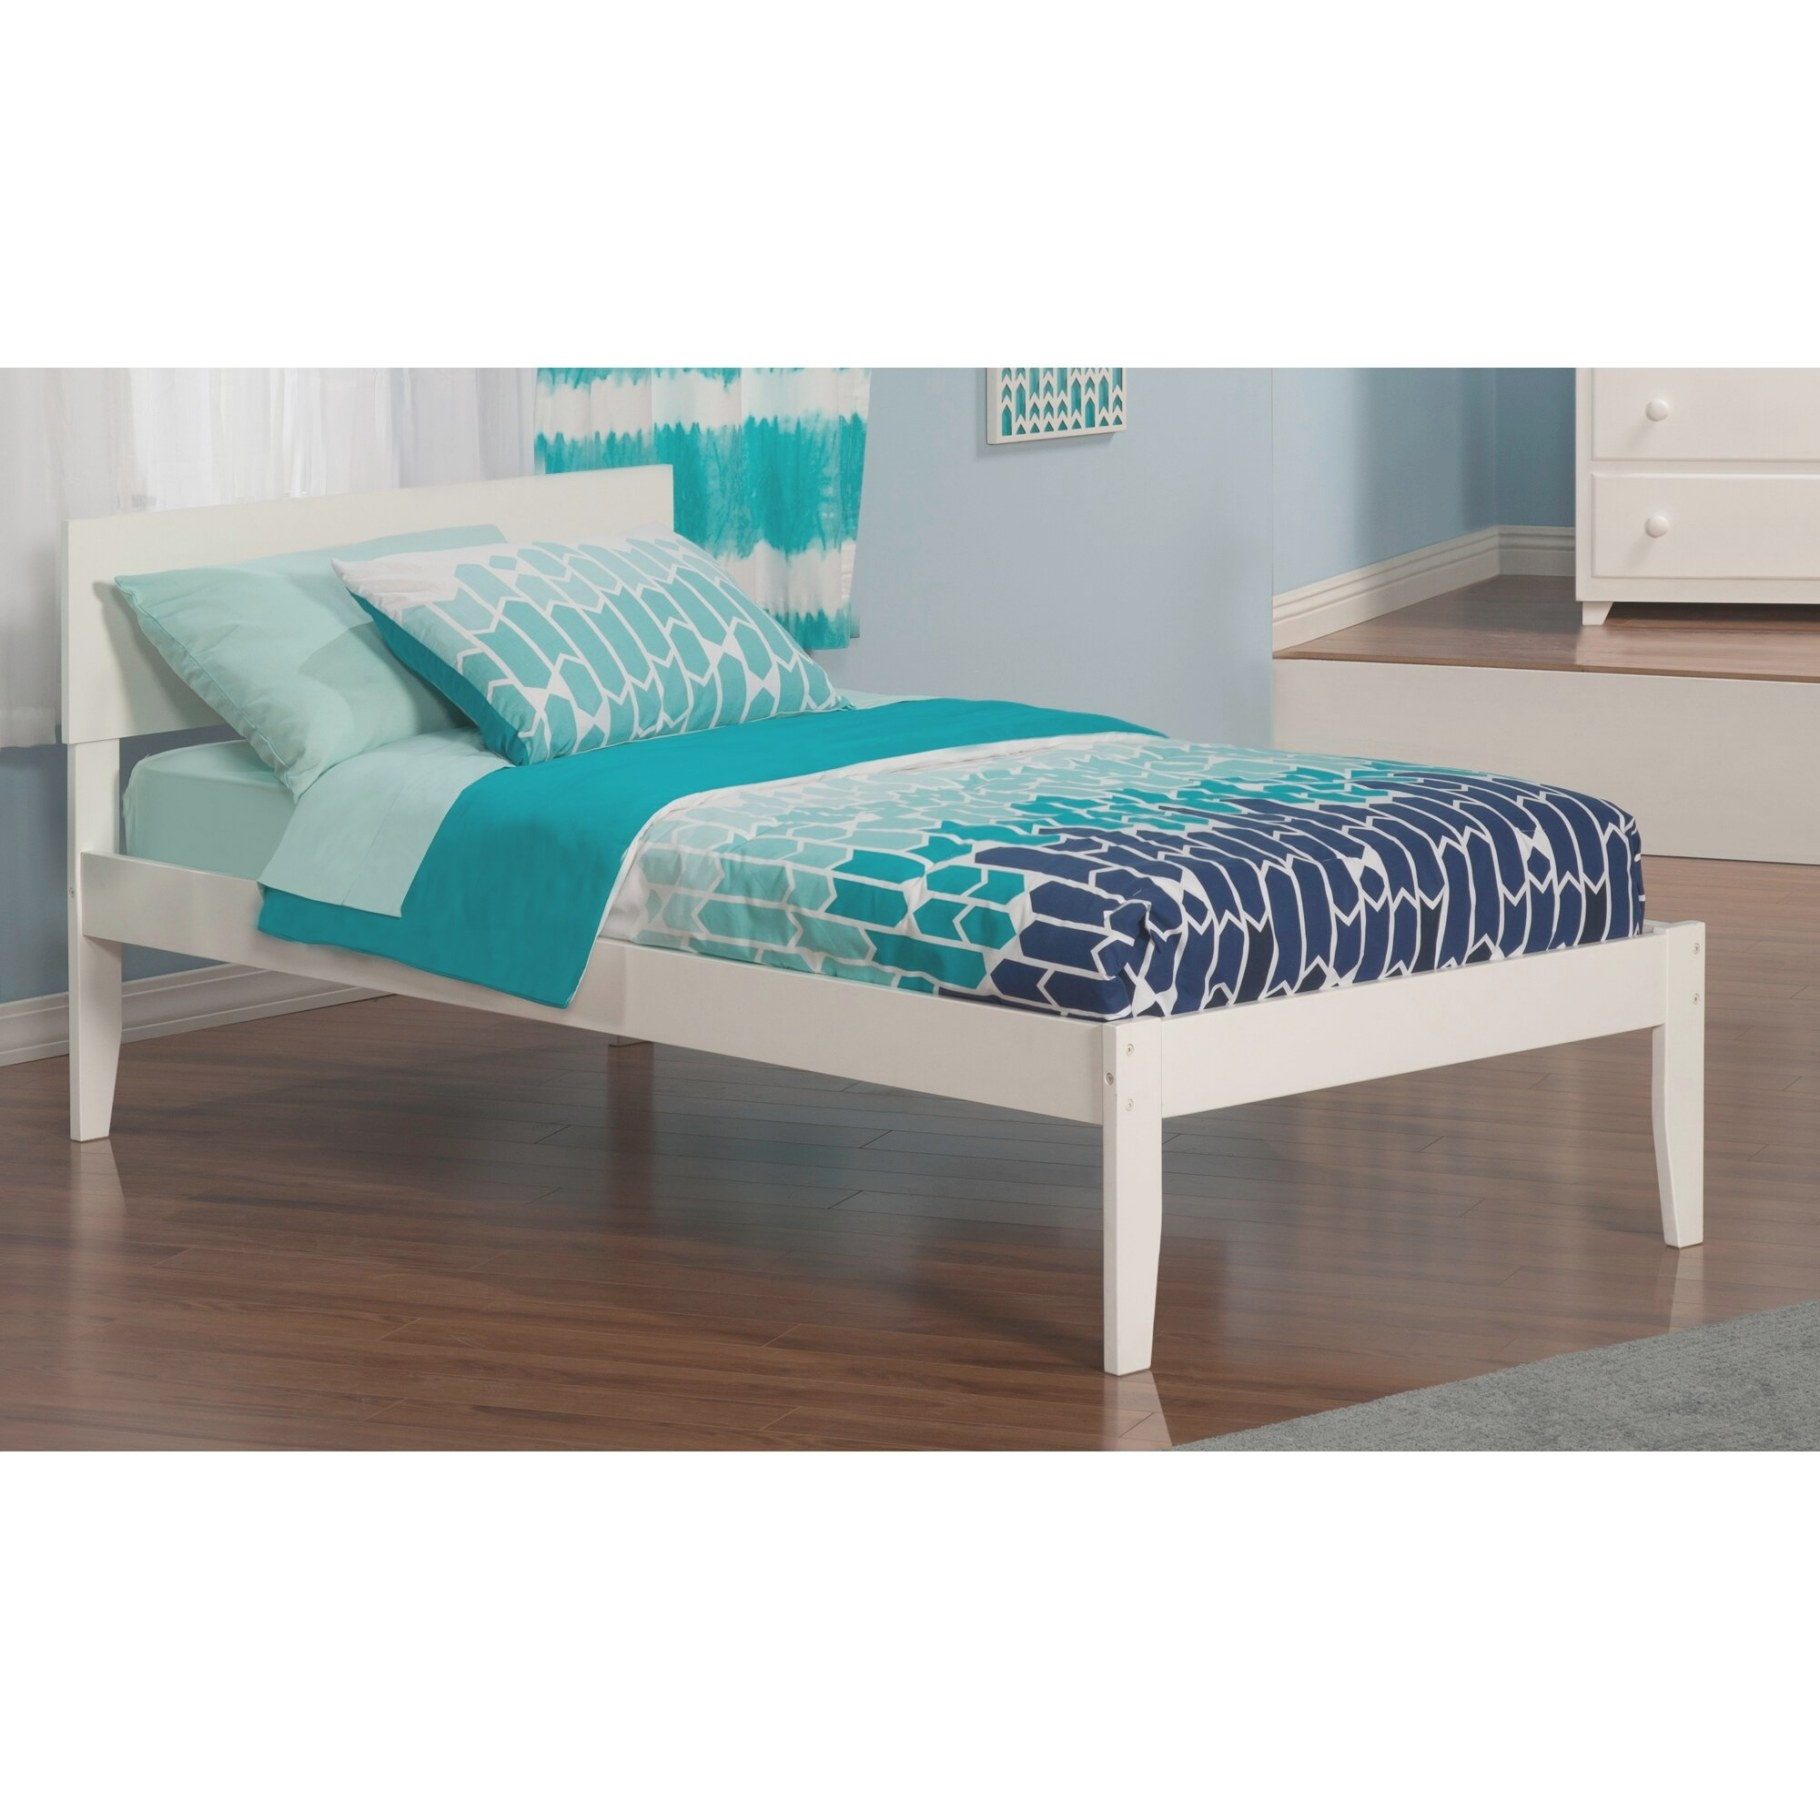 Atlantic Furniture Orlando Extra Long Twin Panel Bed inside Extra Long Twin Bed